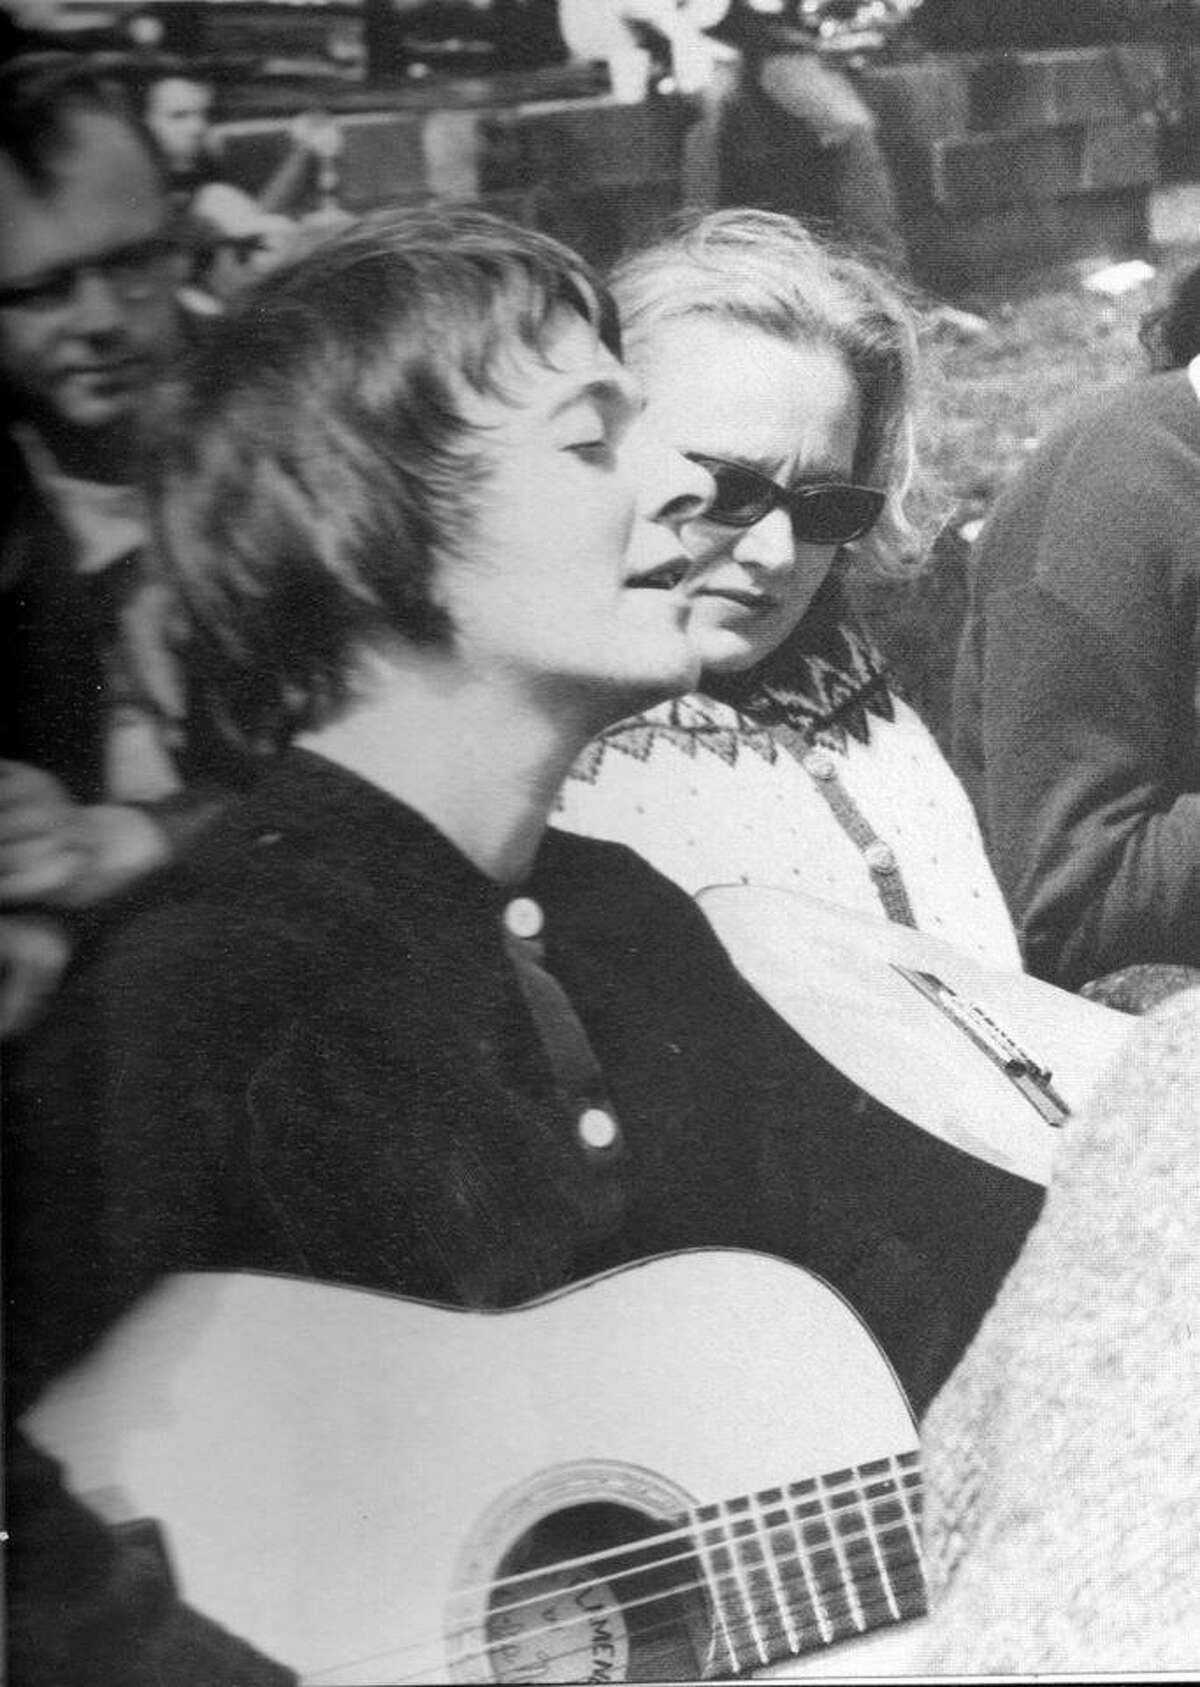 Judy Collins, then five days past her 22nd birthday, at the 1961 Indian Neck Folk Festival in Branford on May 6, 1961.The photo was taken by Stephen H. Fenerjian, a then-27-year-old Cambridge, Mass., photographer. Fernerjian now is 87 and living in Sharon, Mass.